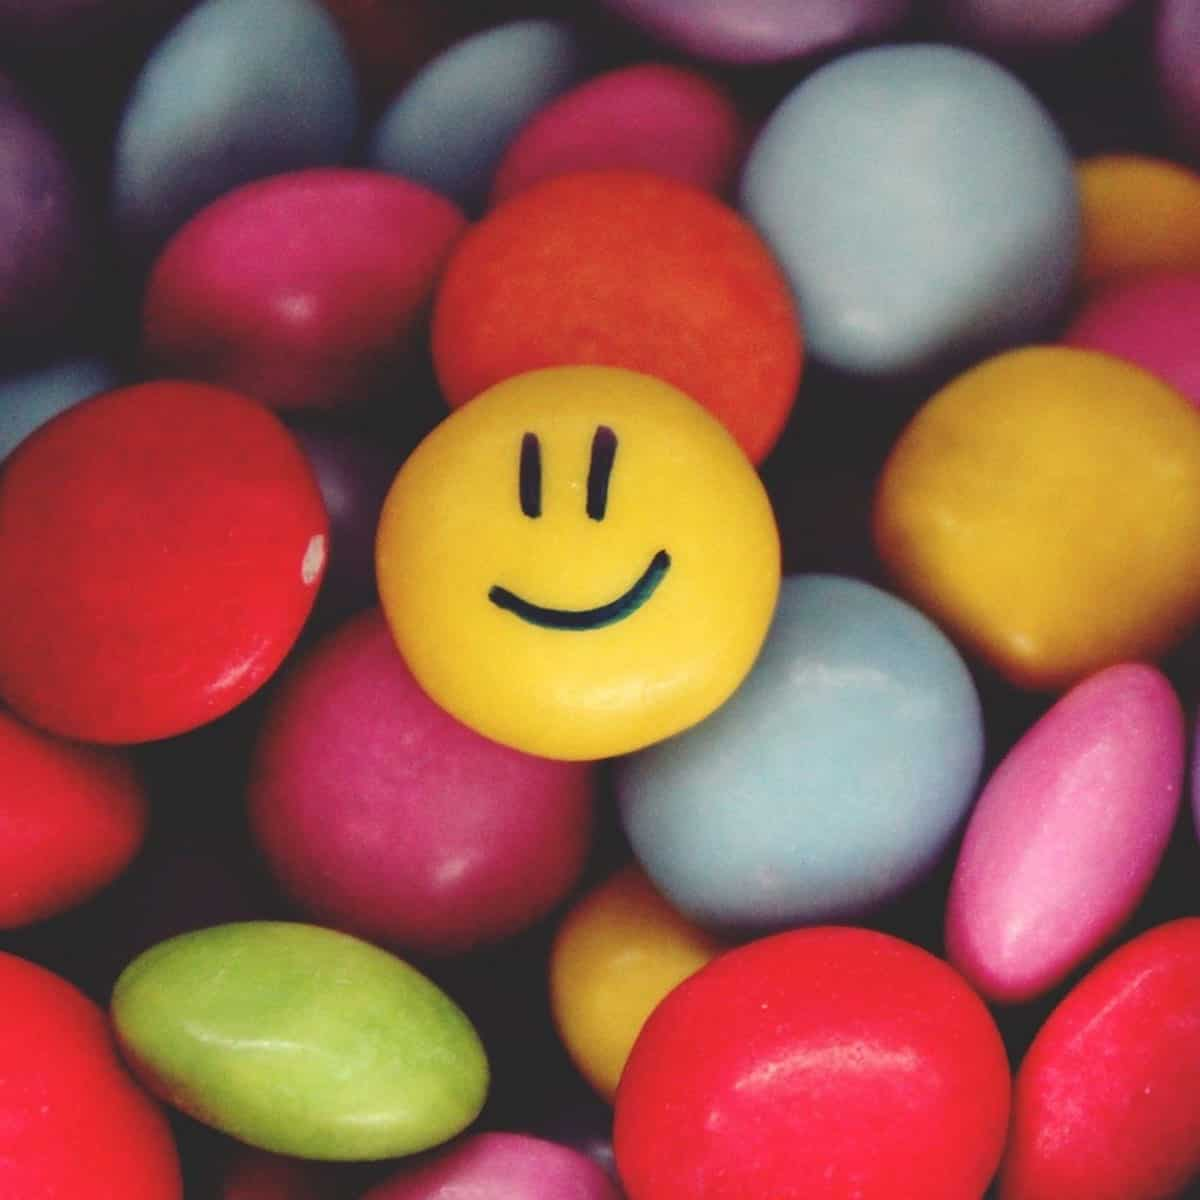 colorful round candy with smiley face on one